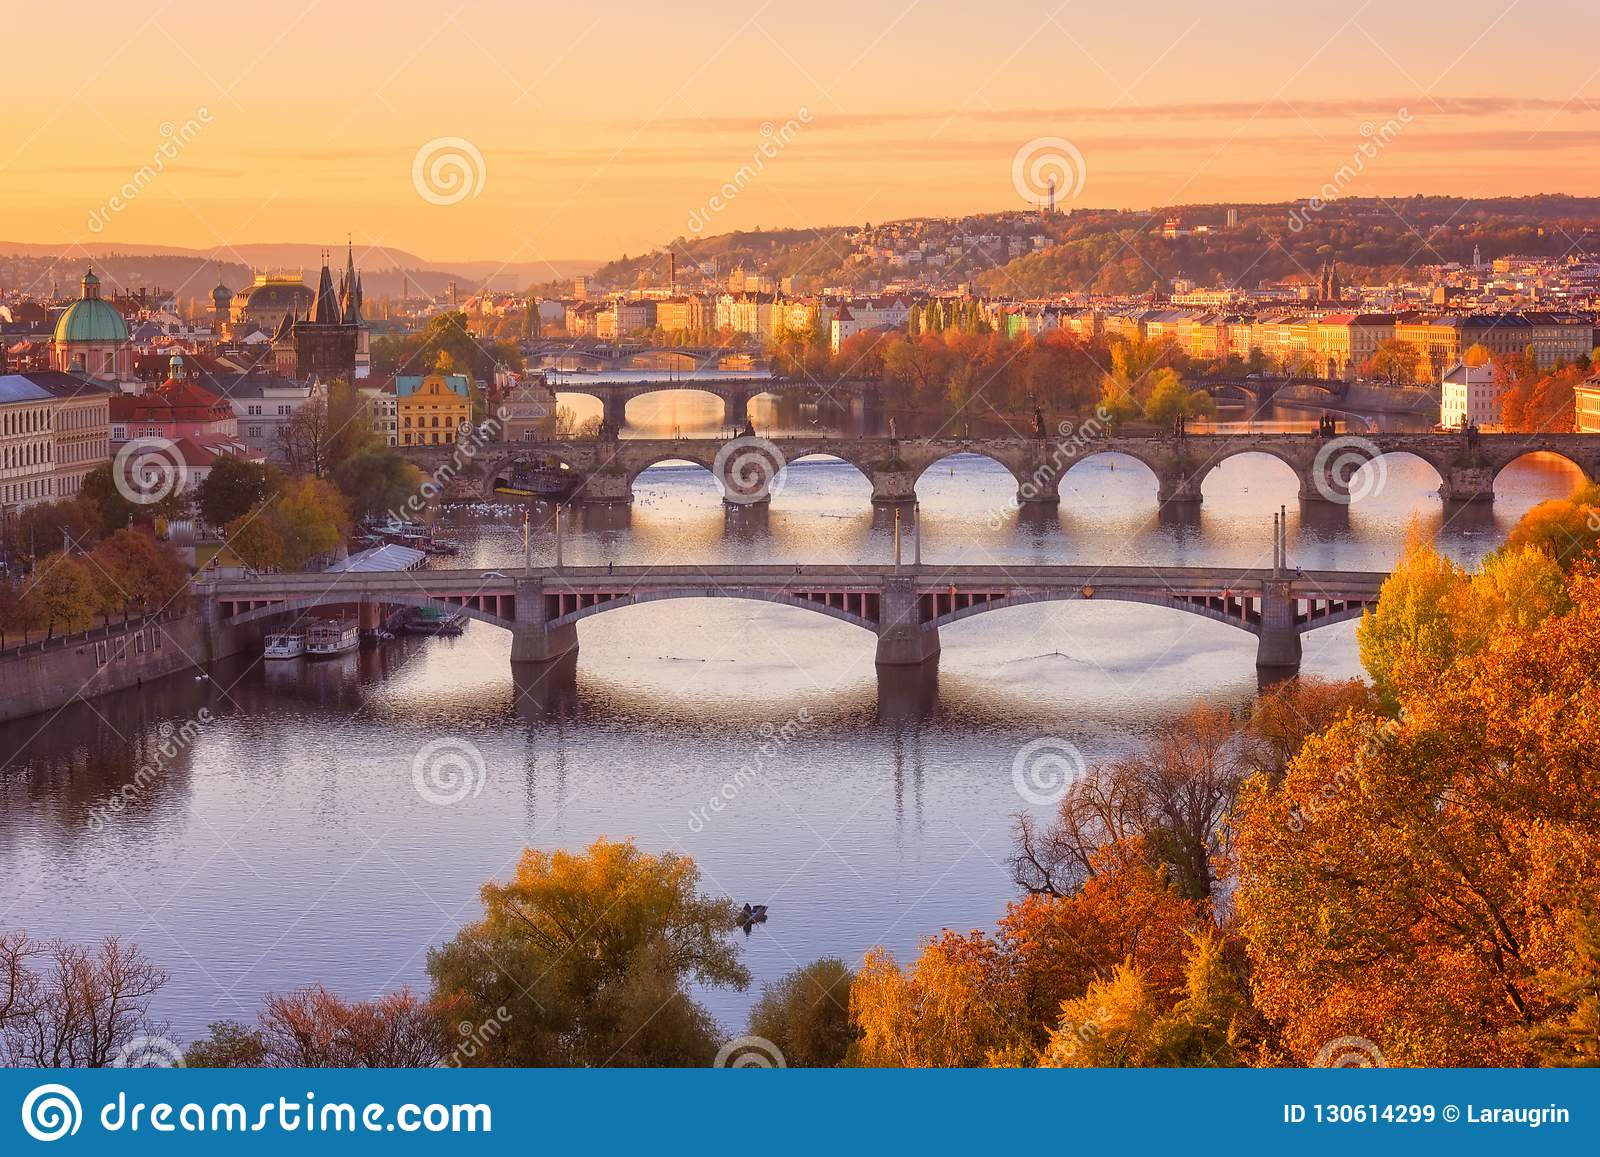 Prague, panoramic view to the historical bridges, old town and Vltava river from popular view point in Letna park, Czech Republic